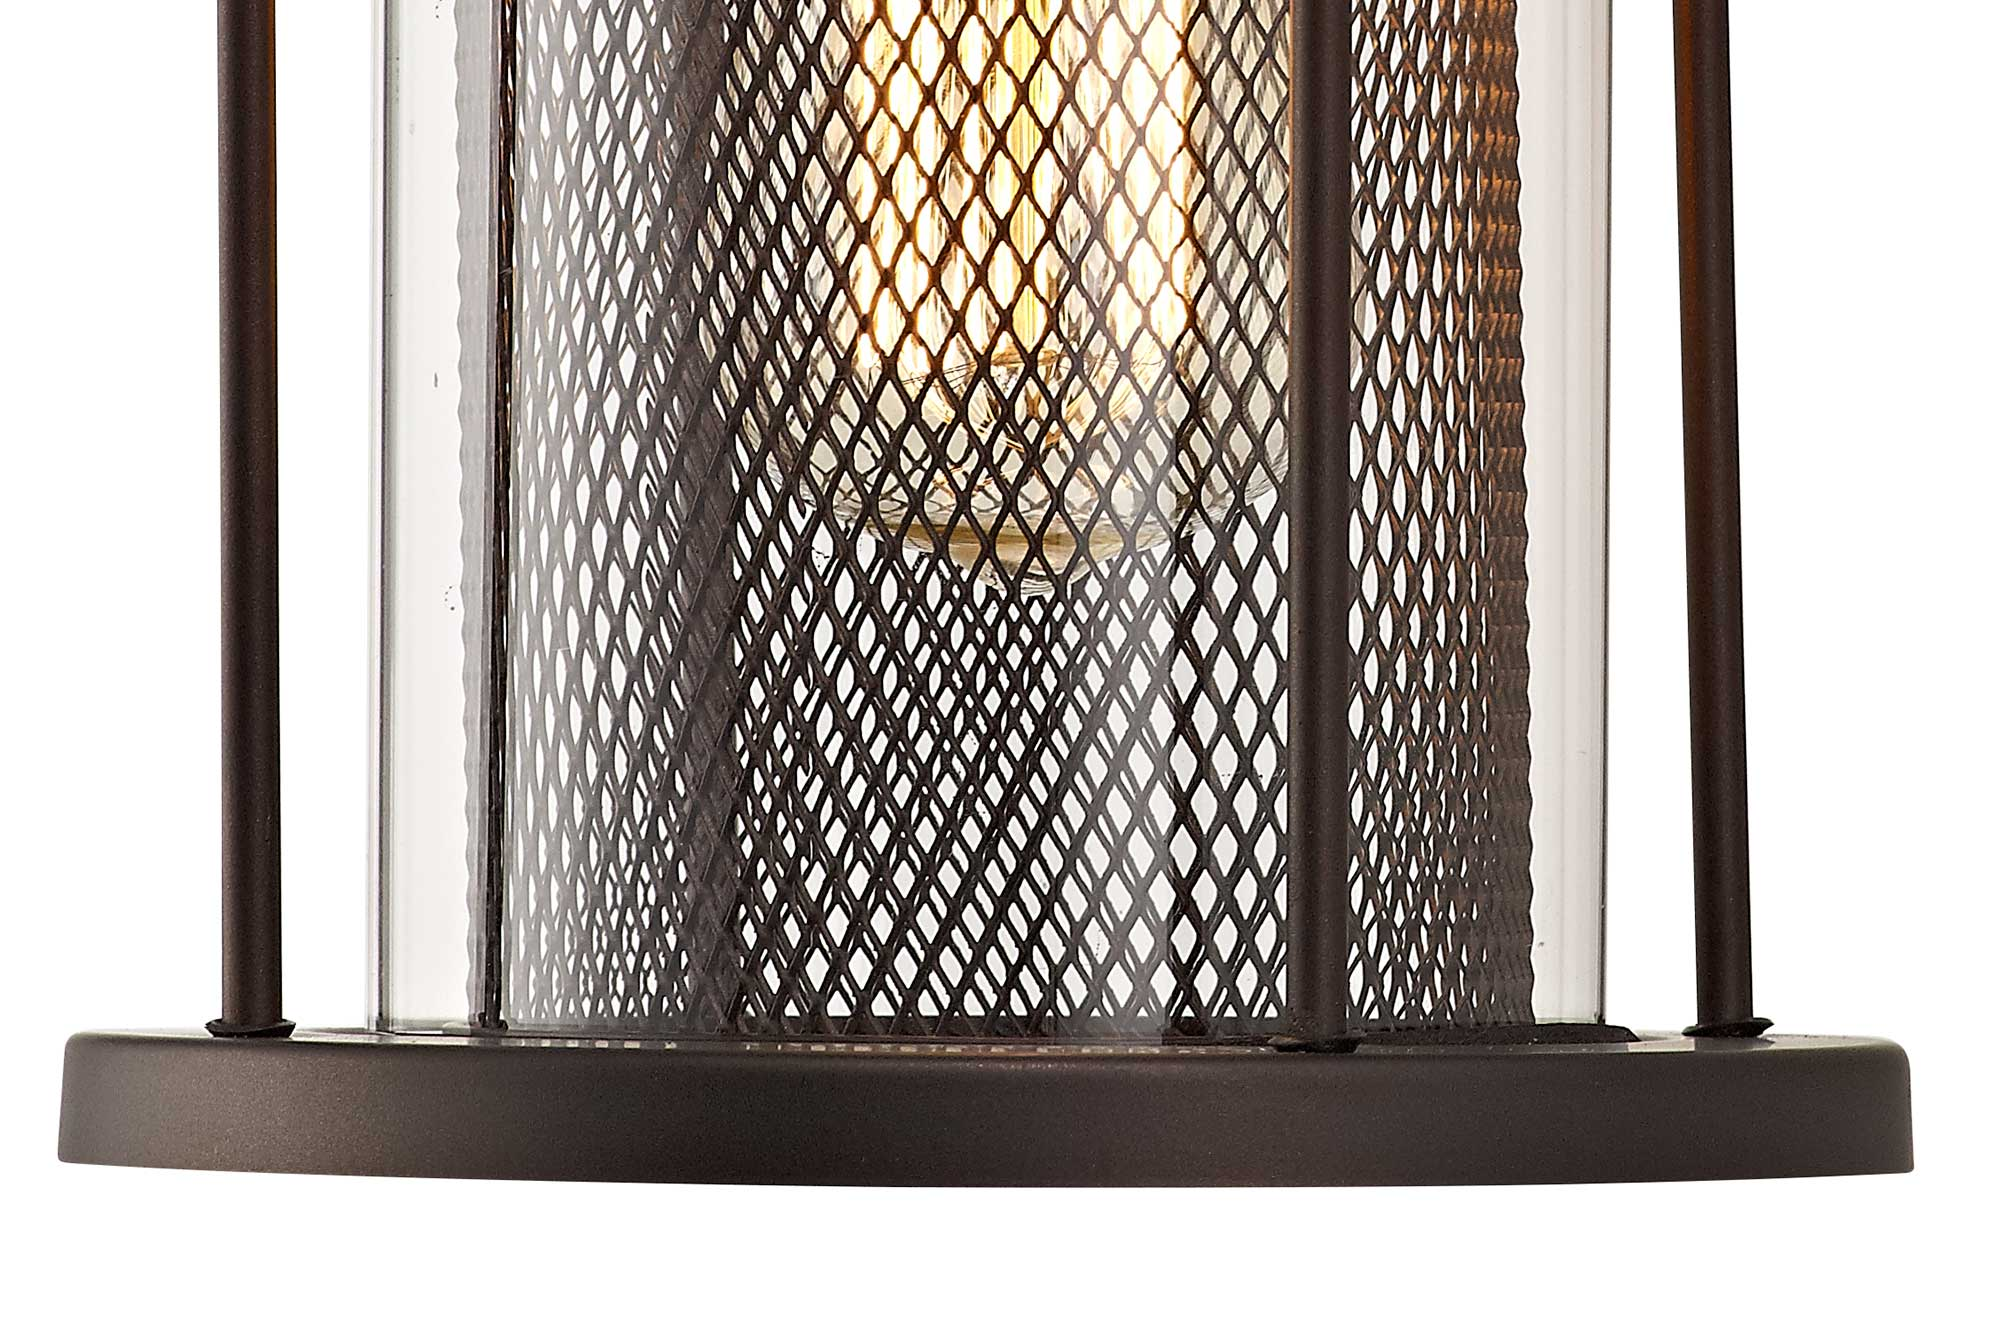 Large Wall Lamp, 1 x E27, Antique Bronze/Clear Glass, IP54, 2yrs Warranty